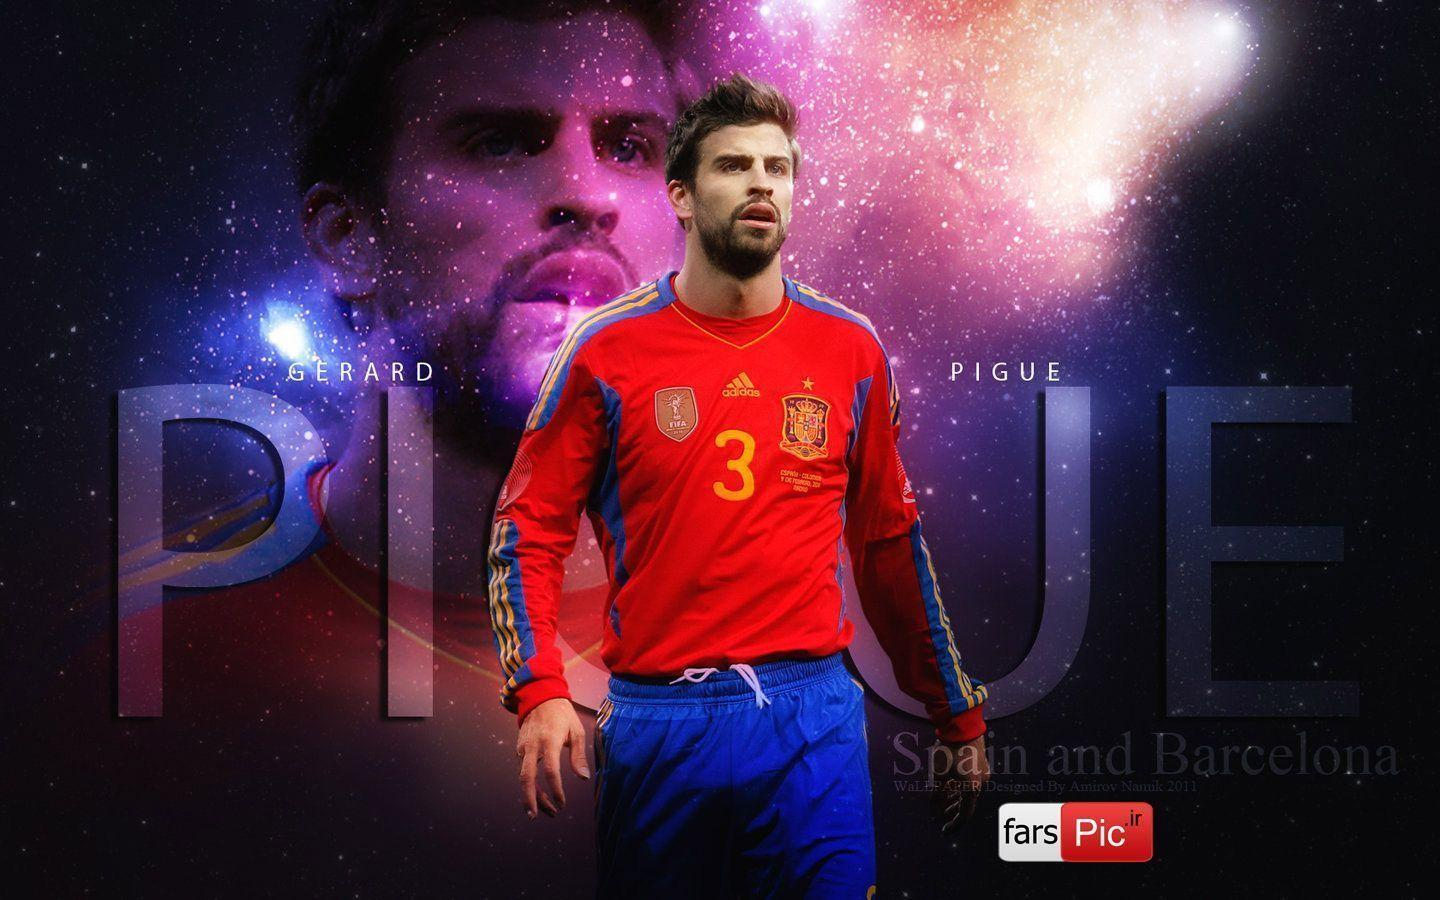 wallpapers free picture: Gerard Pique Wallpapers 2011